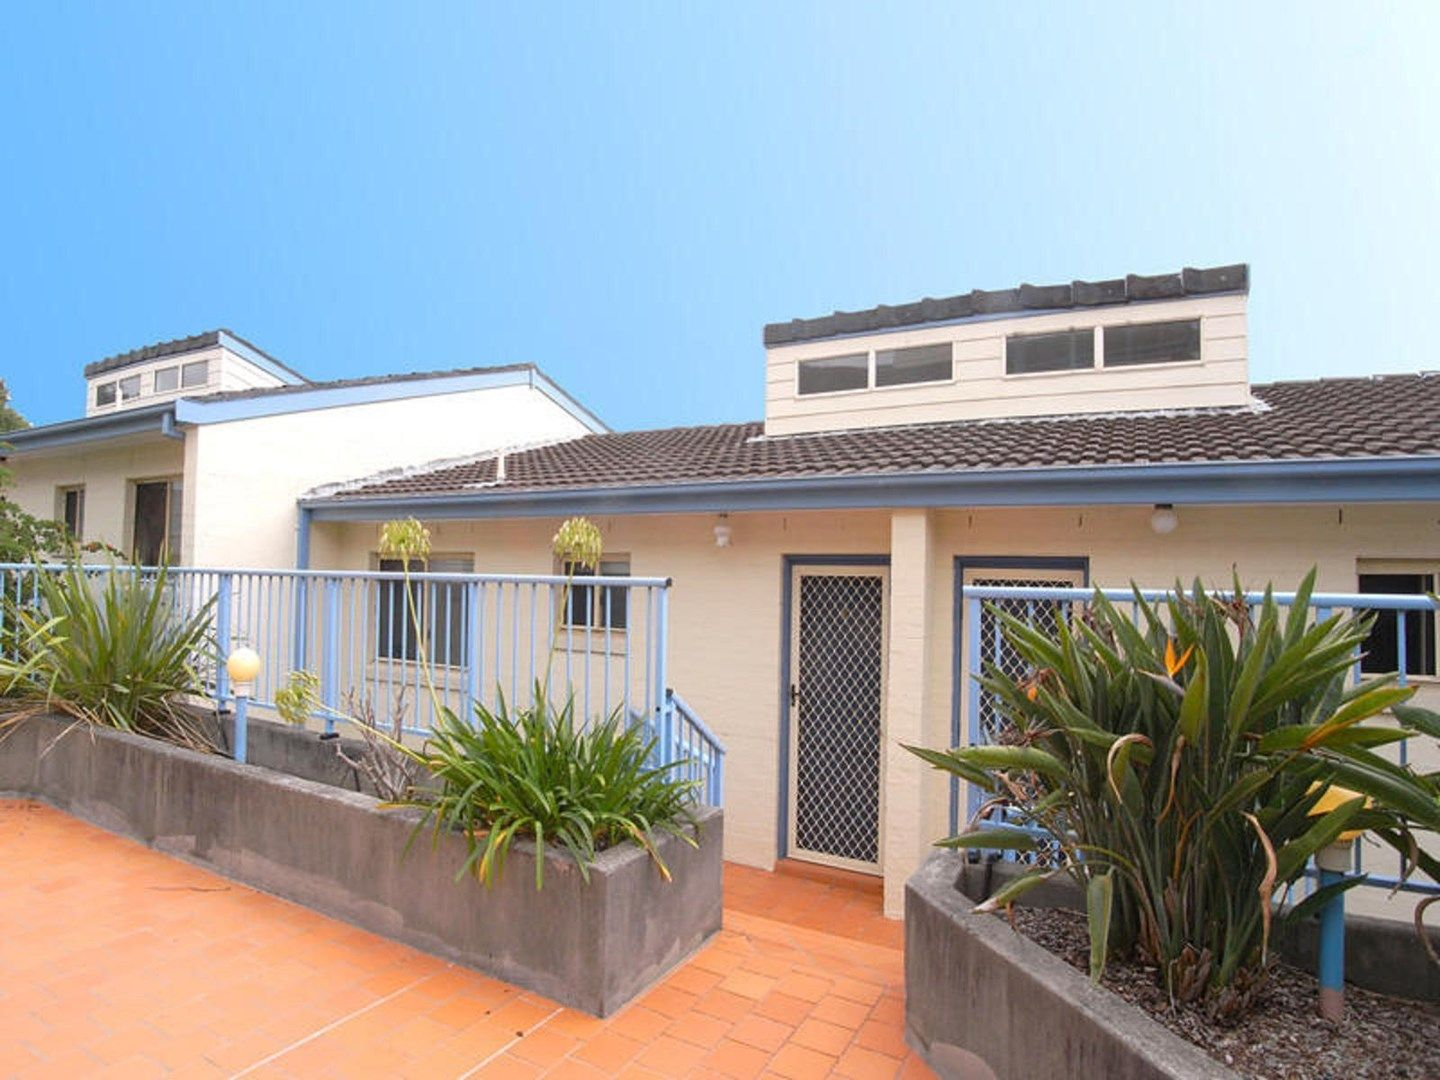 3/39 Havenview Road, Terrigal NSW 2260, Image 0